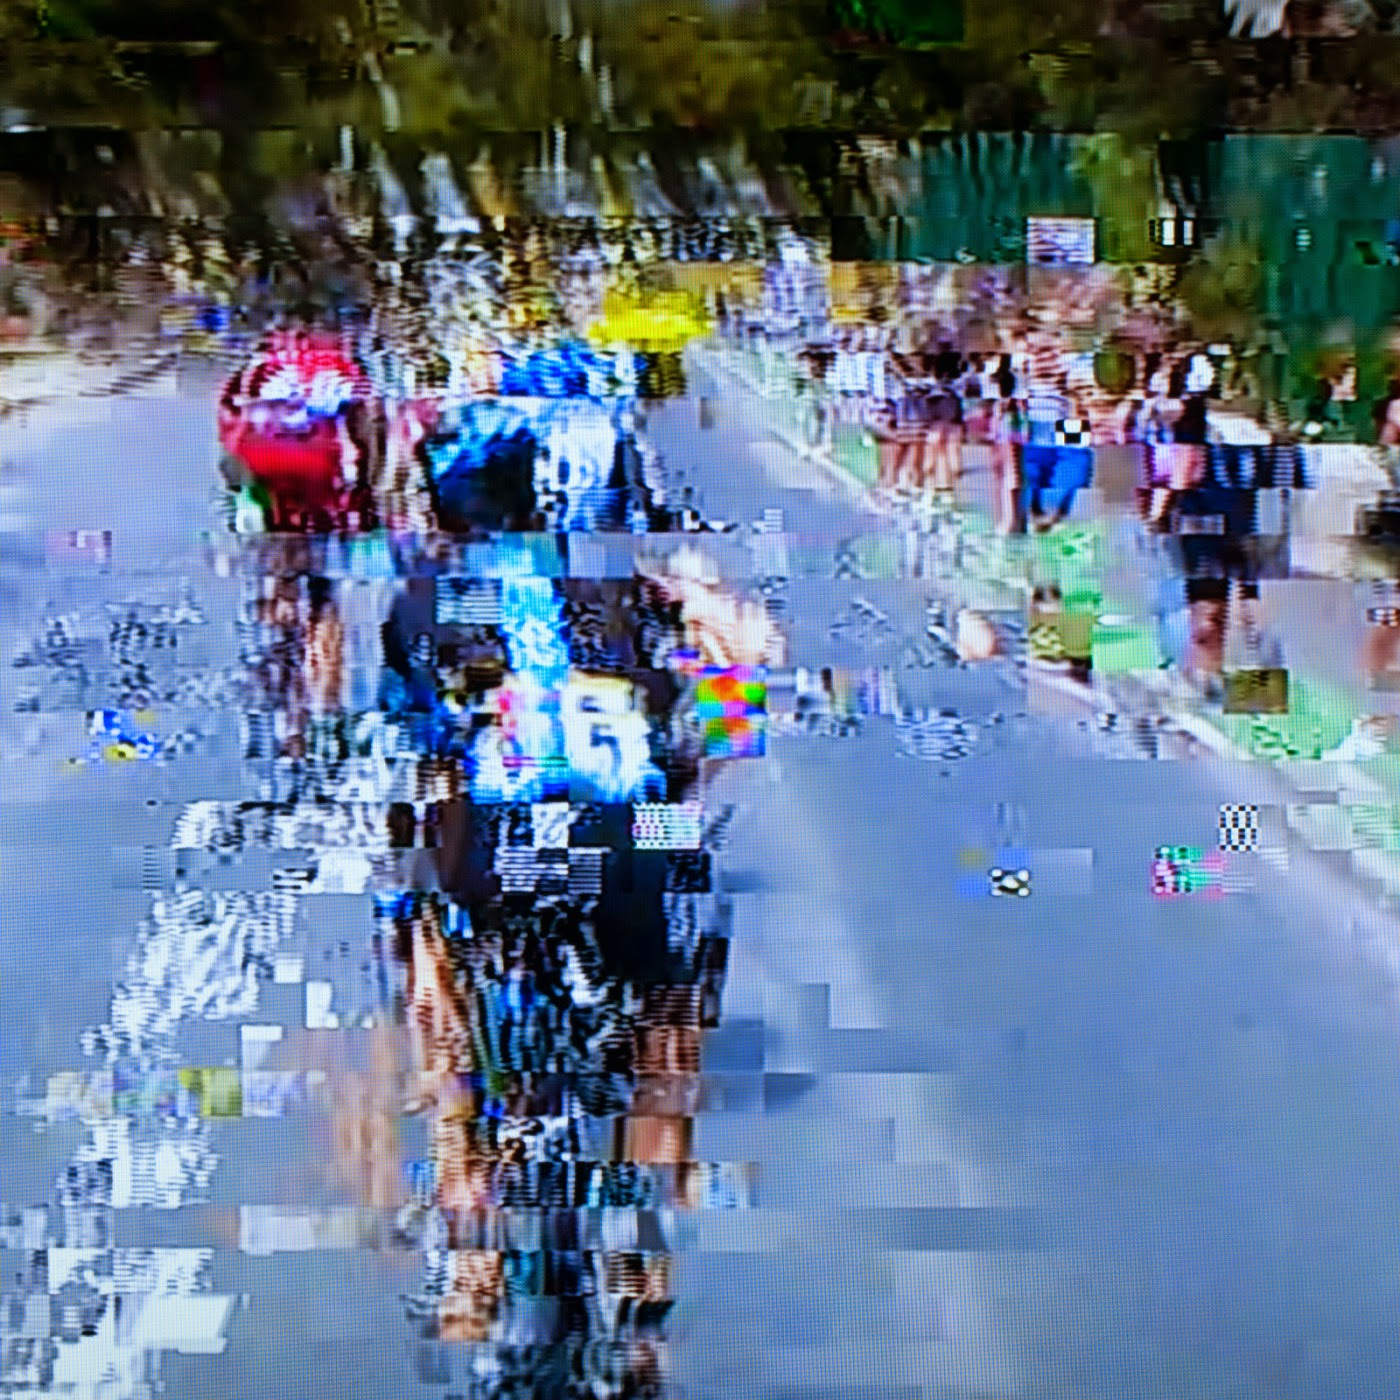 glitch, tim macauley, you won't see this at MoMA, le tour de france, 2014, abstract, abstraction, tv coverage, signal loss, noise to signal ratio, photographic art, graphic, digital, noise, signal,